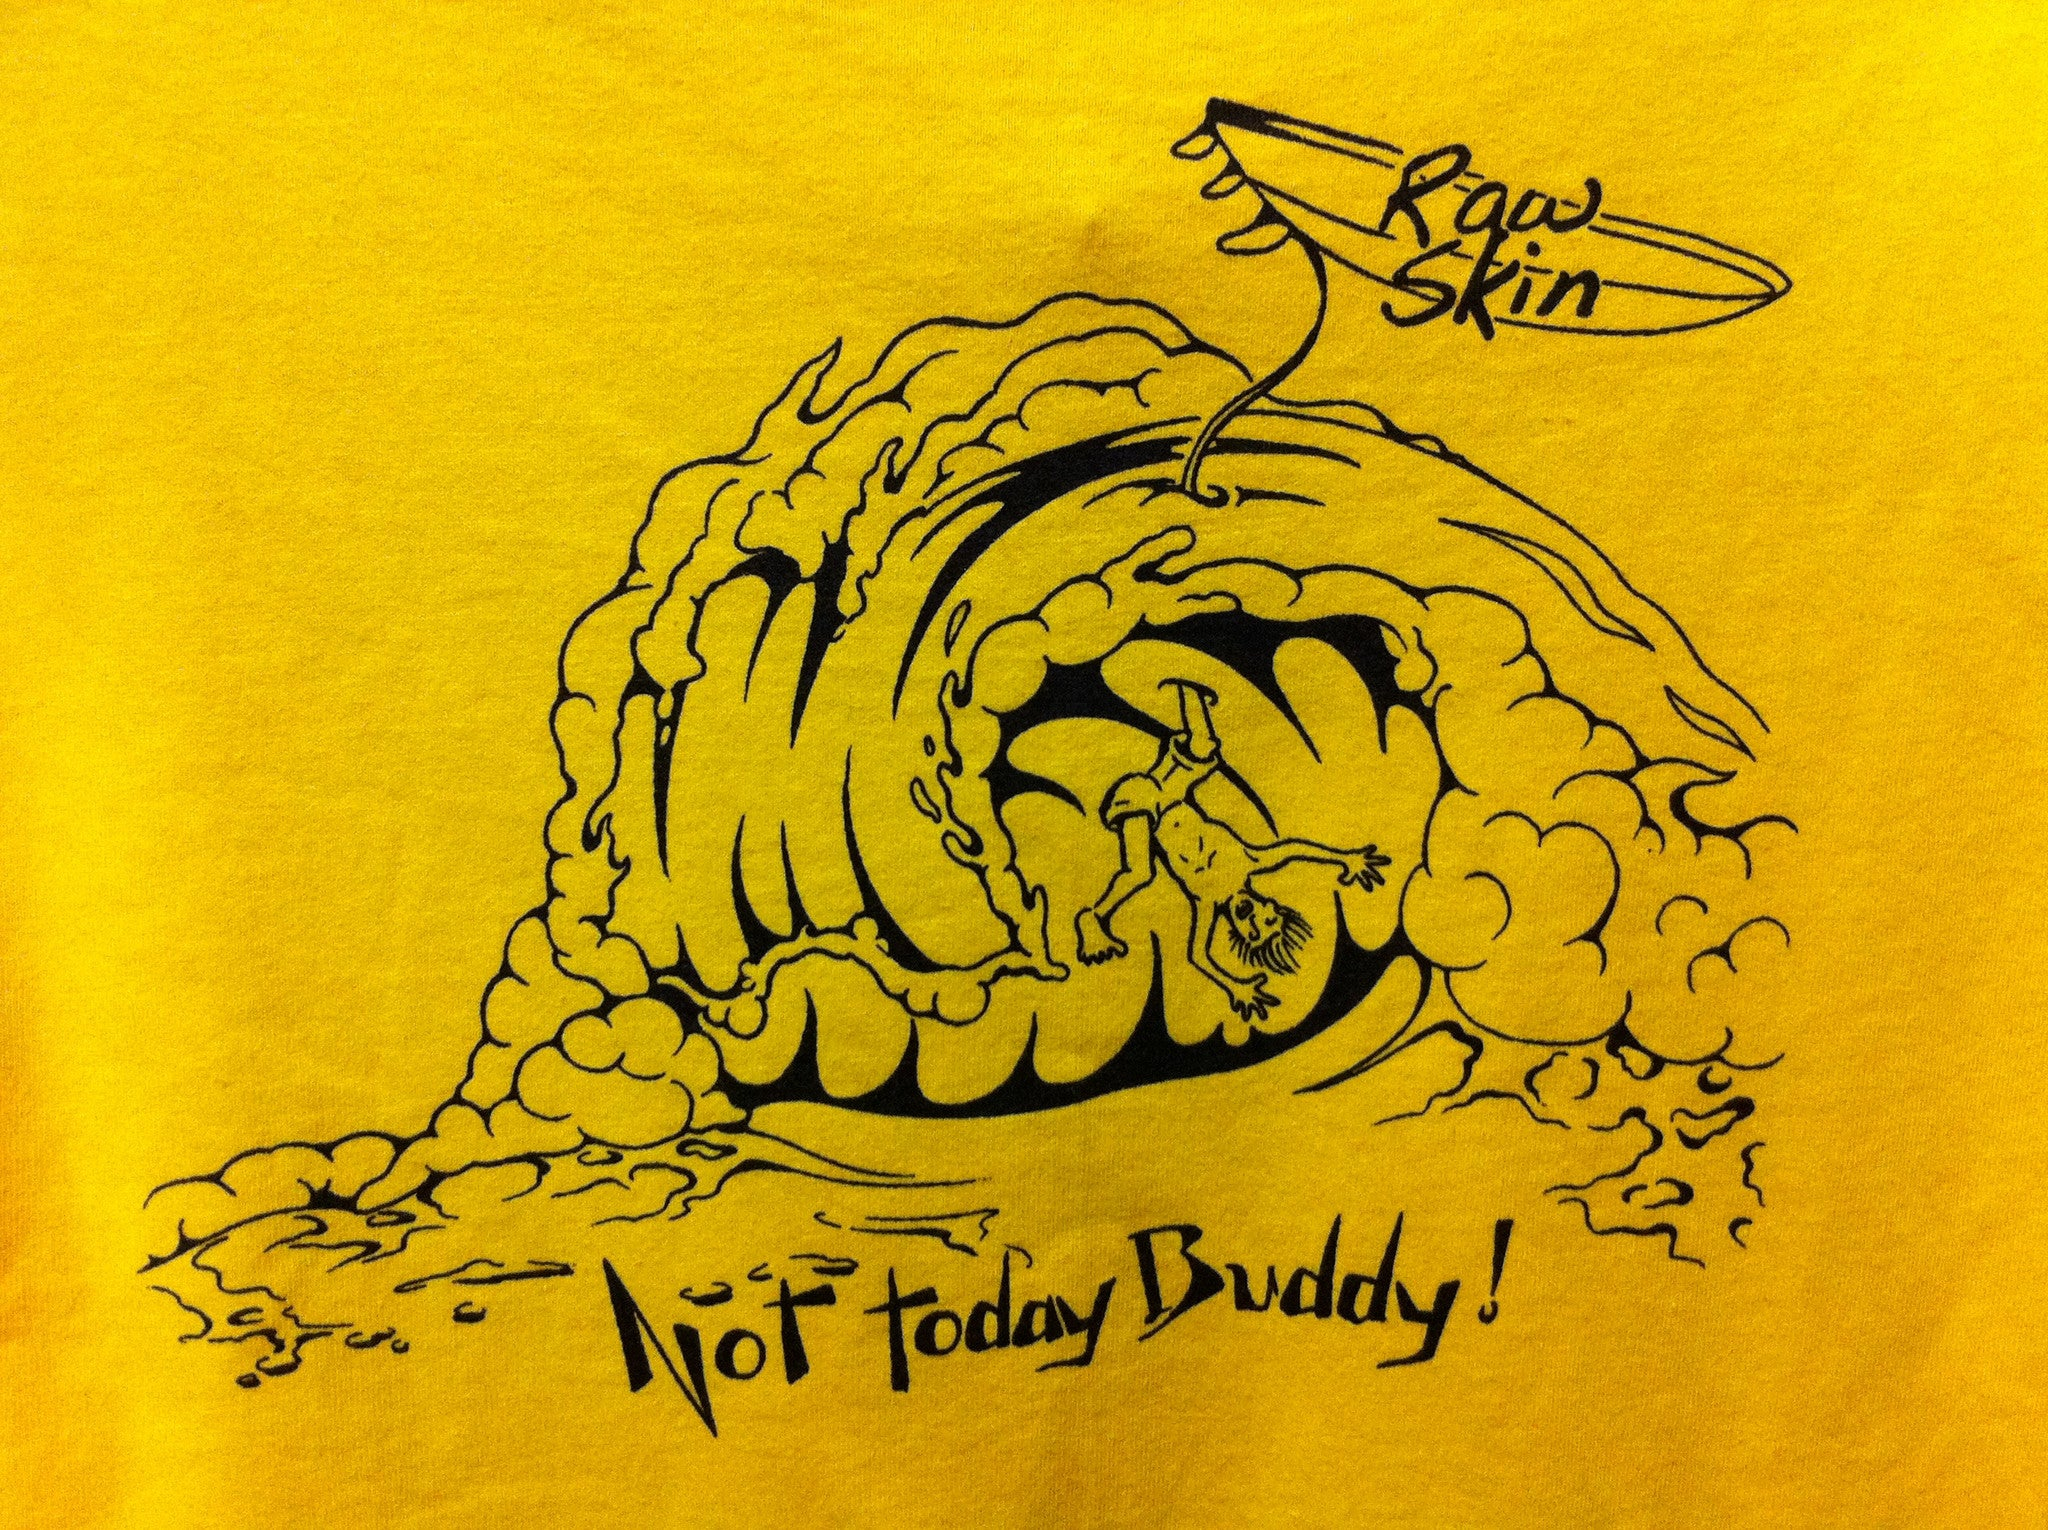 Mens Not Today Buddy T-Shirt - Raw Skin Surf Shack